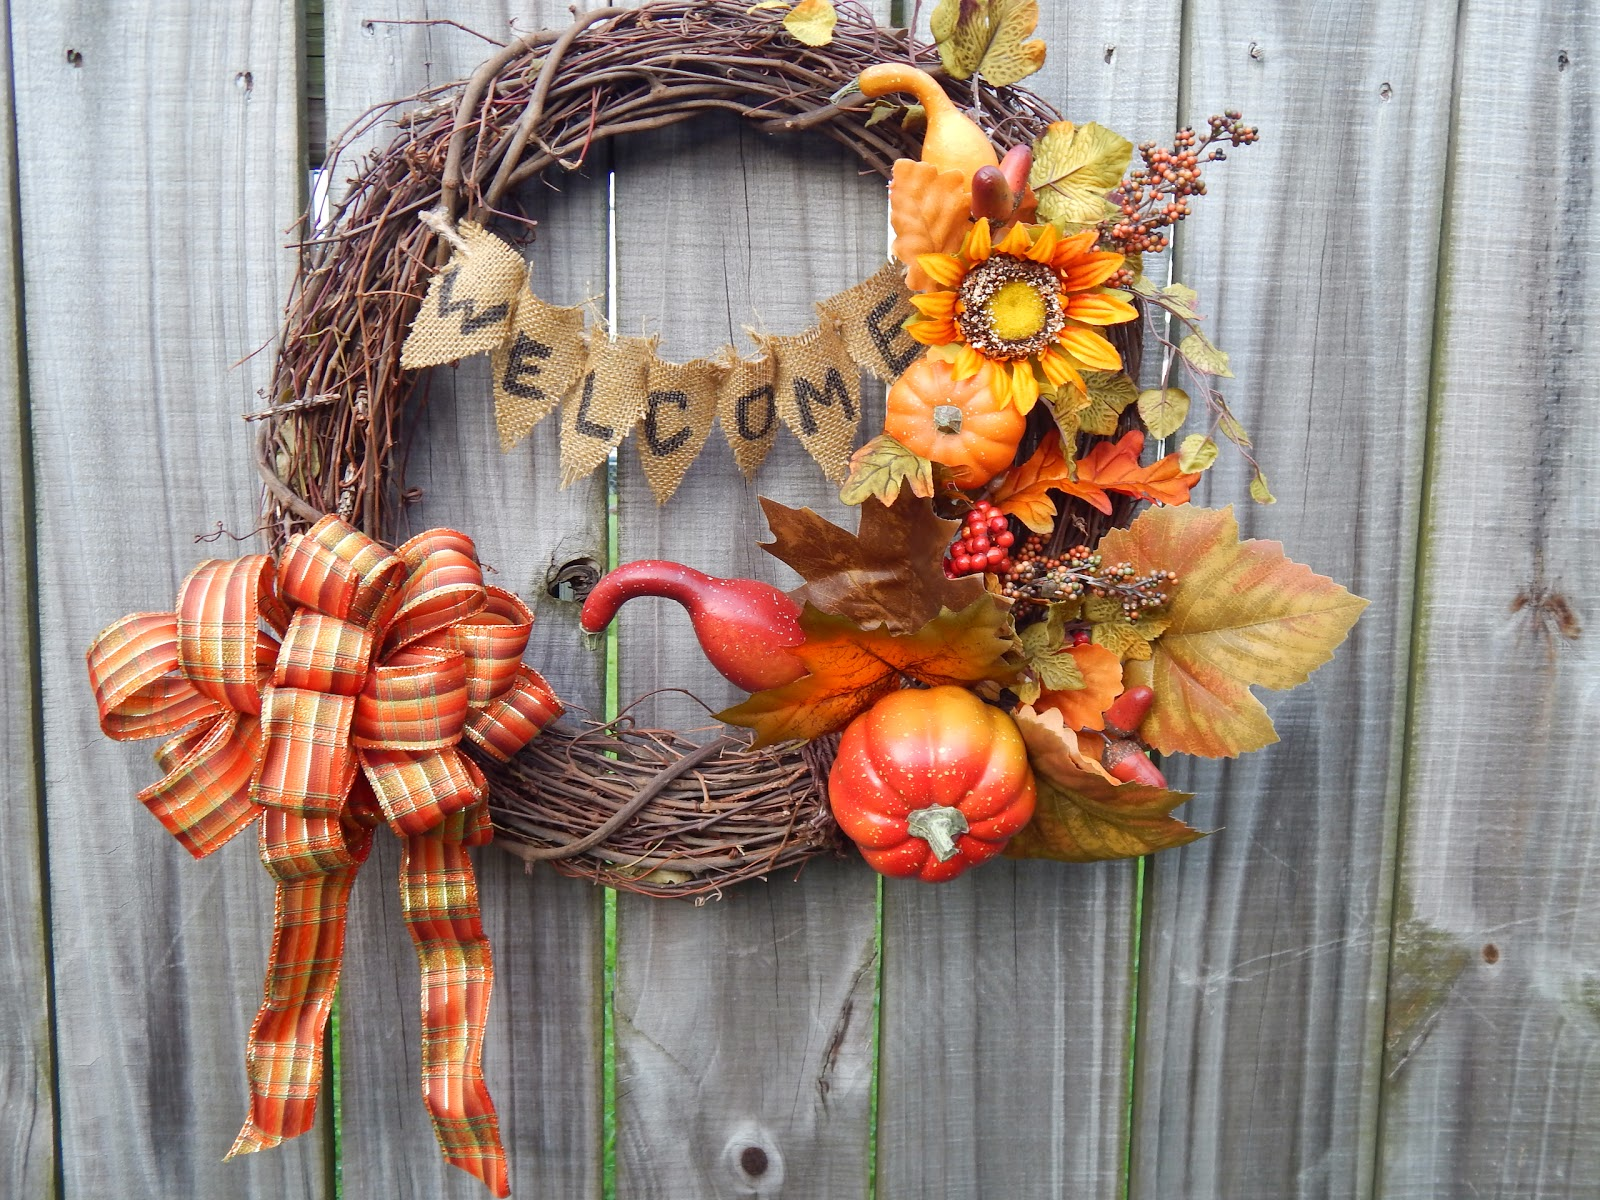 Wreath, Fall Wreath, Door Decoration, Decorating for Fall